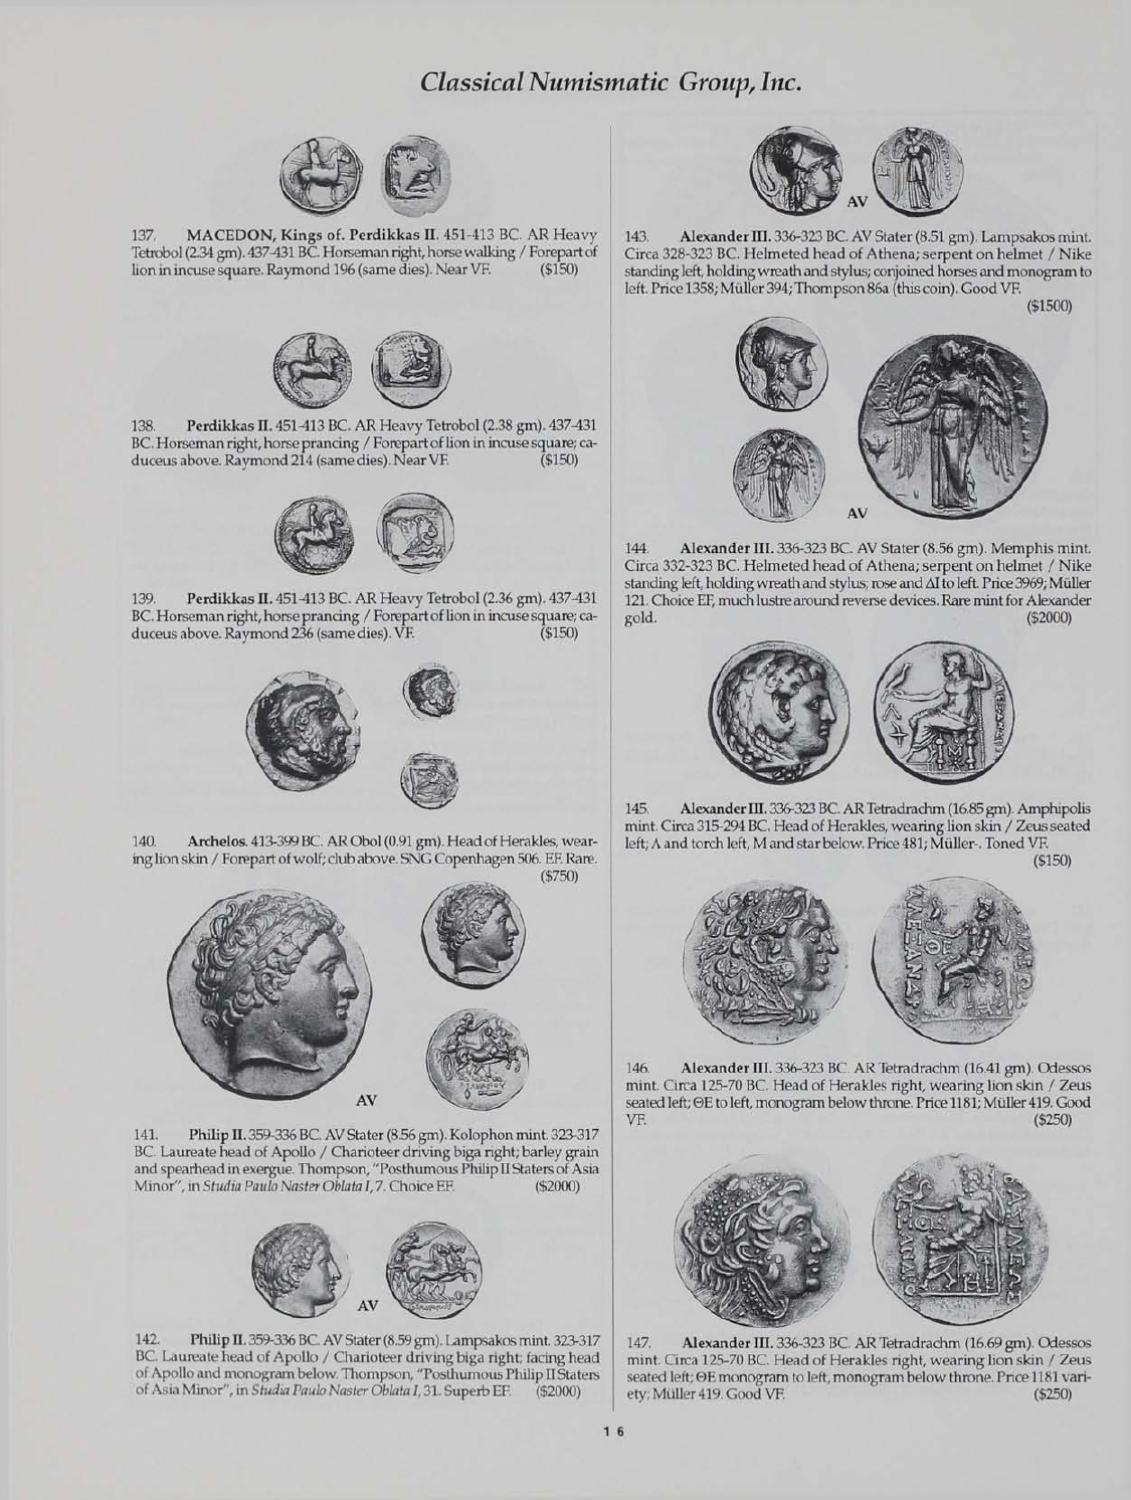 CNG_XXXIII by Classical Numismatic Group, LLC - issuu